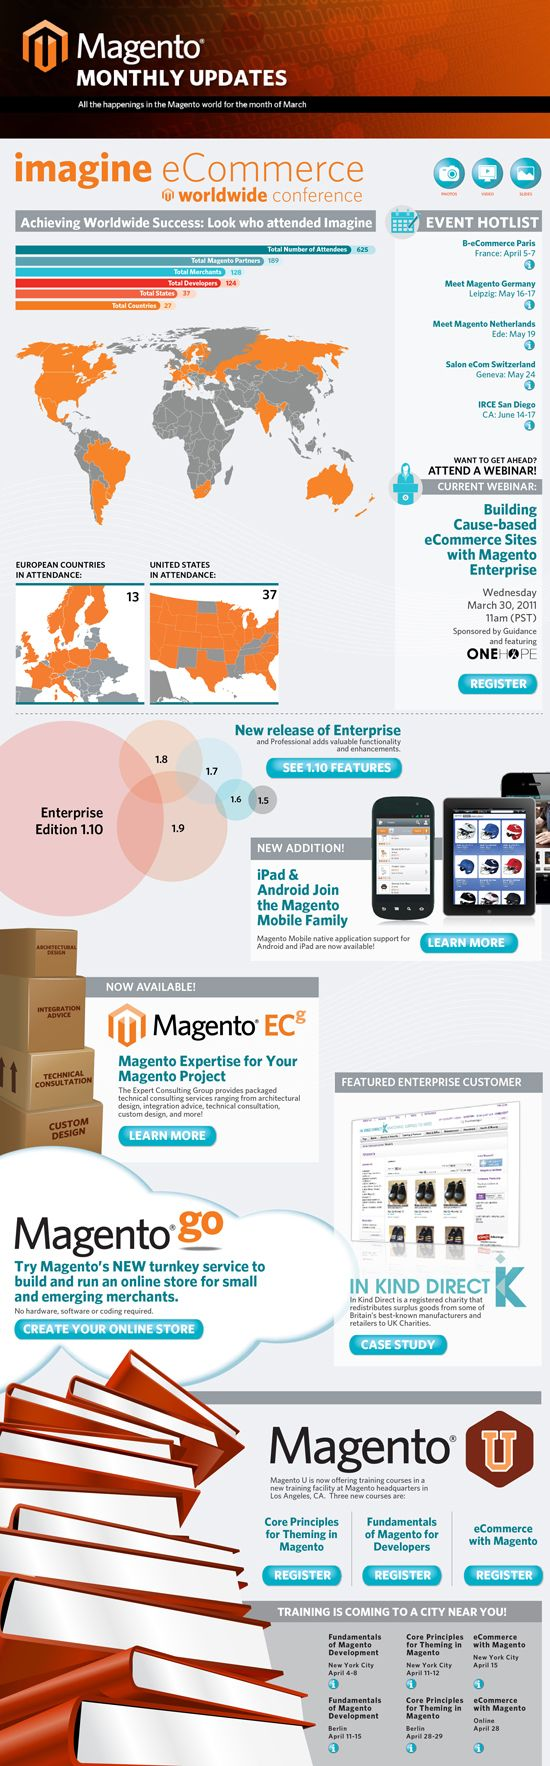 All the happenings in the Magento world for the month of March 2012